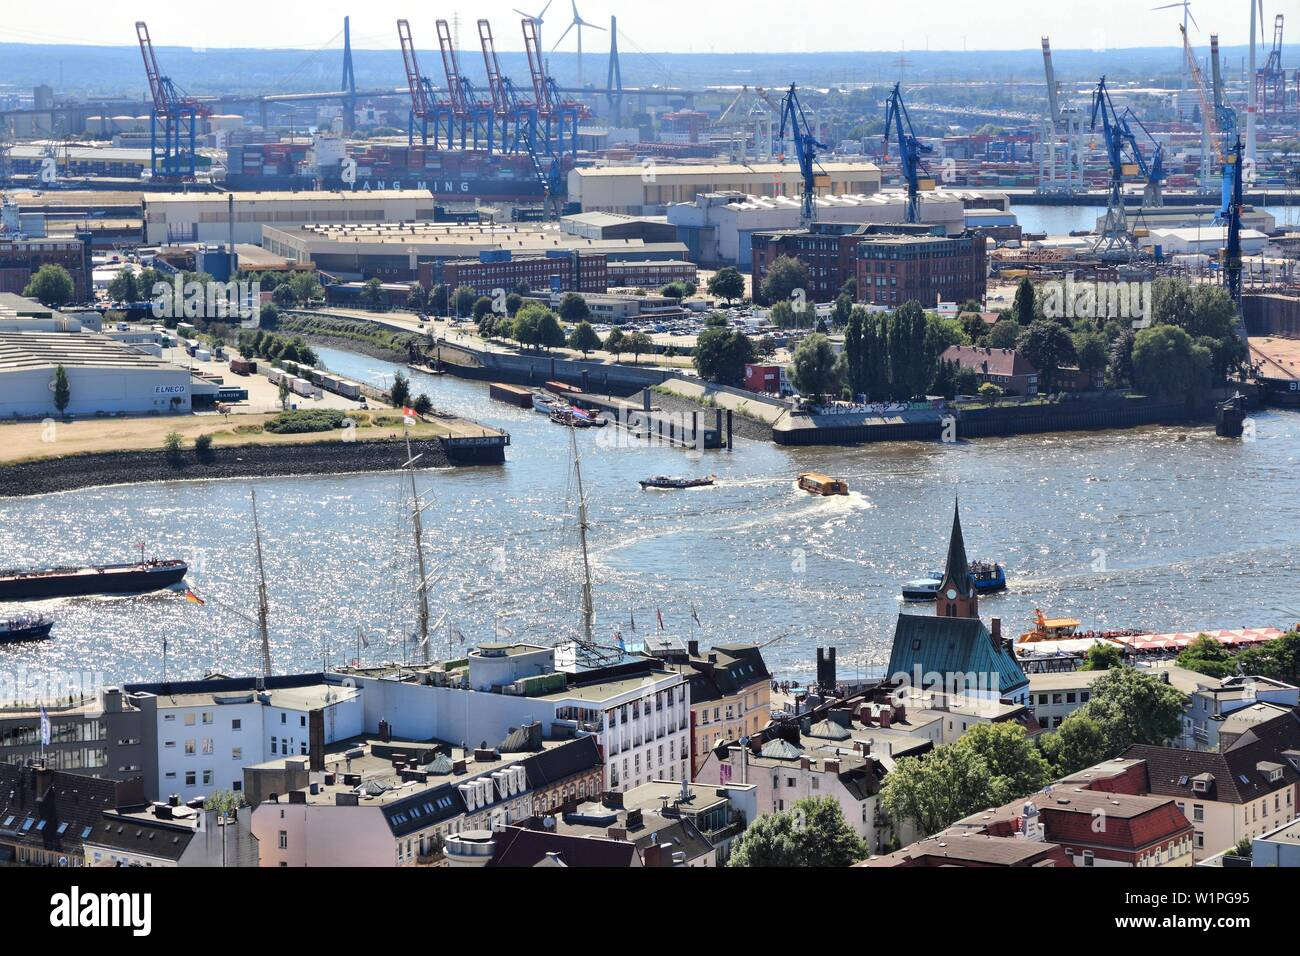 HAMBURG, GERMANY - AUGUST 28, 2014: Aerial view of Port of Hamburg in Germany. The seaport is the 15th busiest in the world in terms TEU throughput (2 - Stock Image